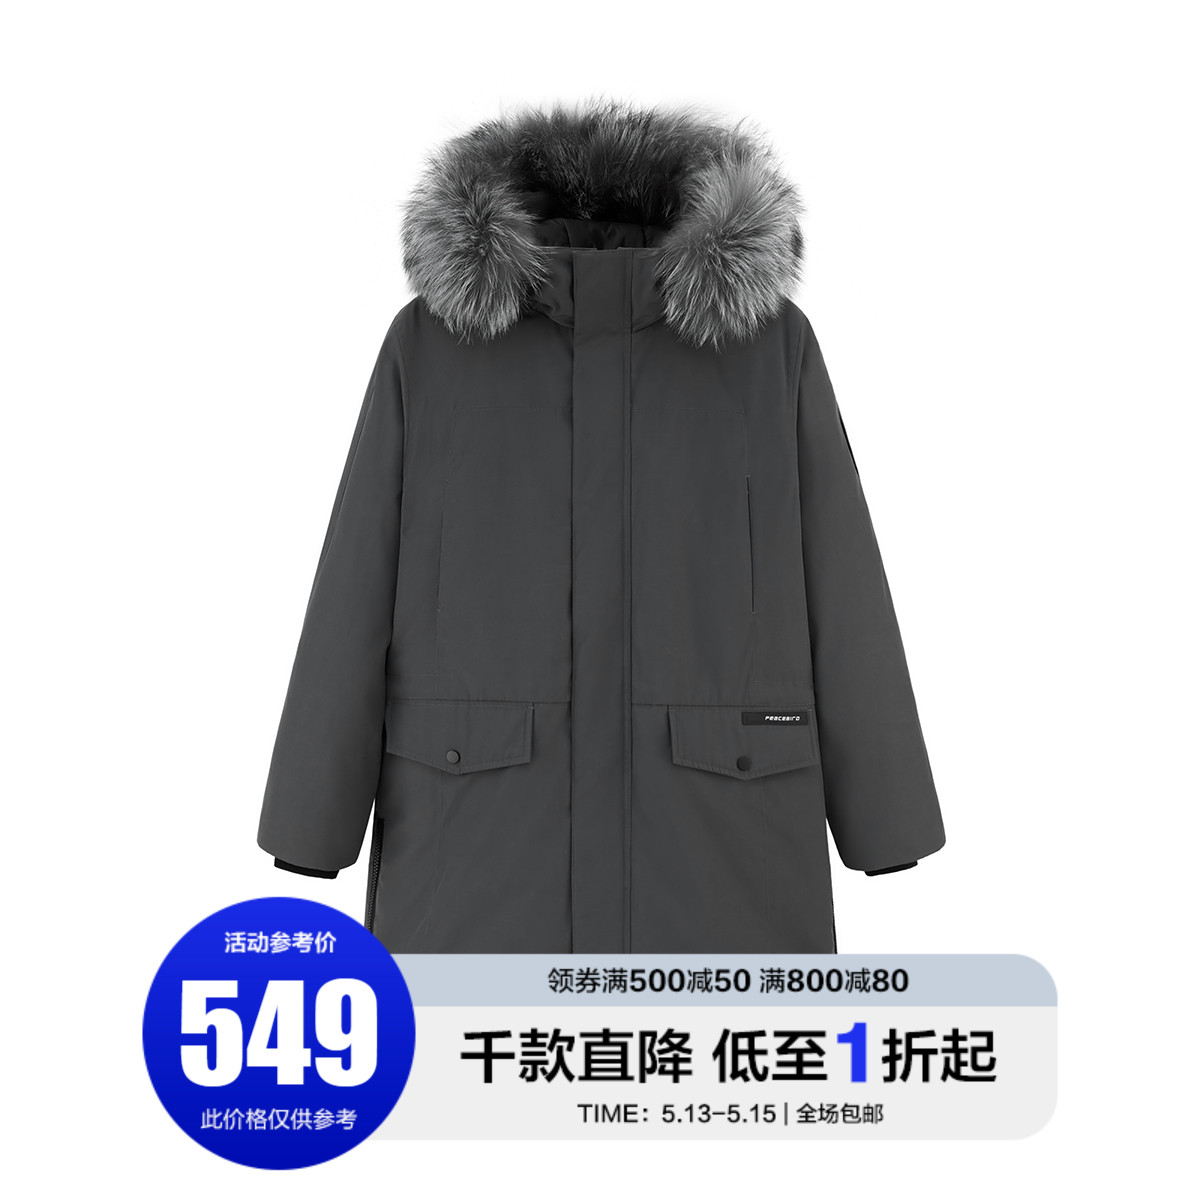 Clearance Taiping bird men's down jacket long fox fur collar goose fur trend handsome plus thick coat